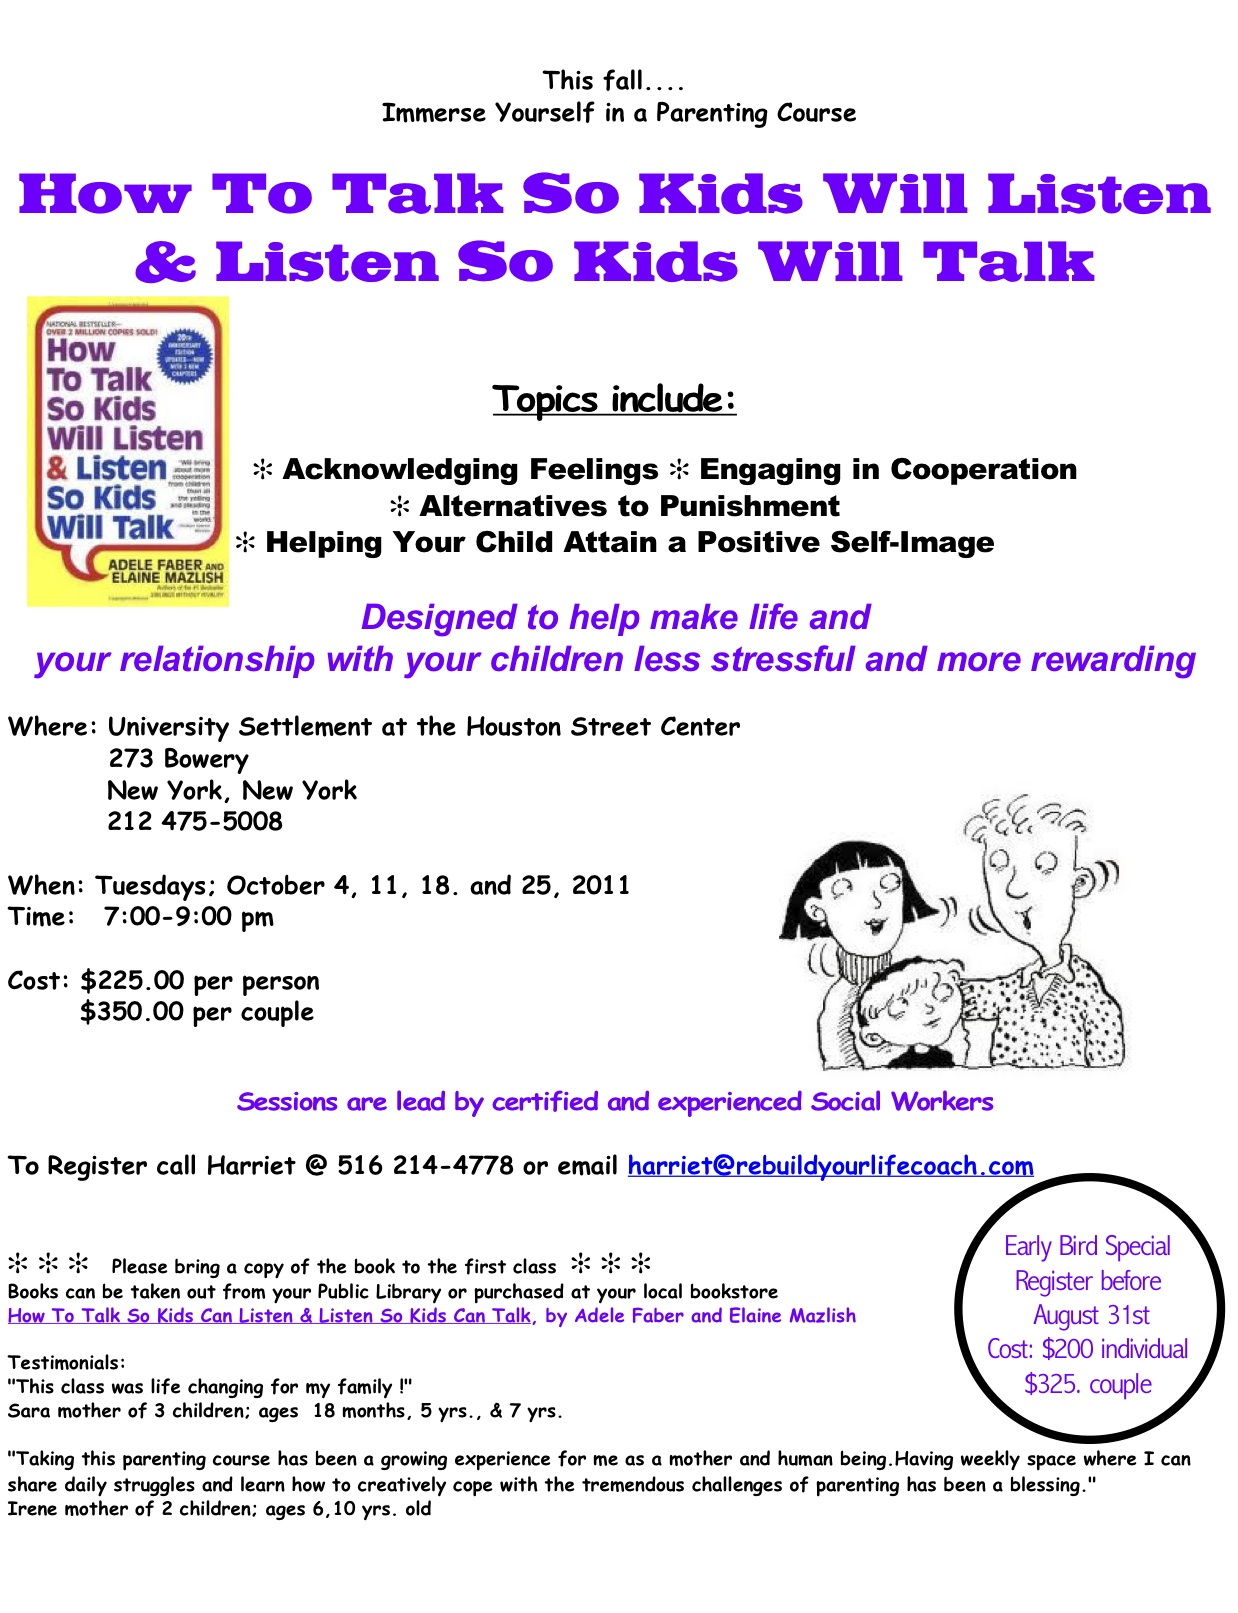 how to talk so kids will listen and listen so kids will talk by adele faber and elaine mazlish is a  How to talk so the kids will listen & listen so kids will talk adele faber elaine mazlish.